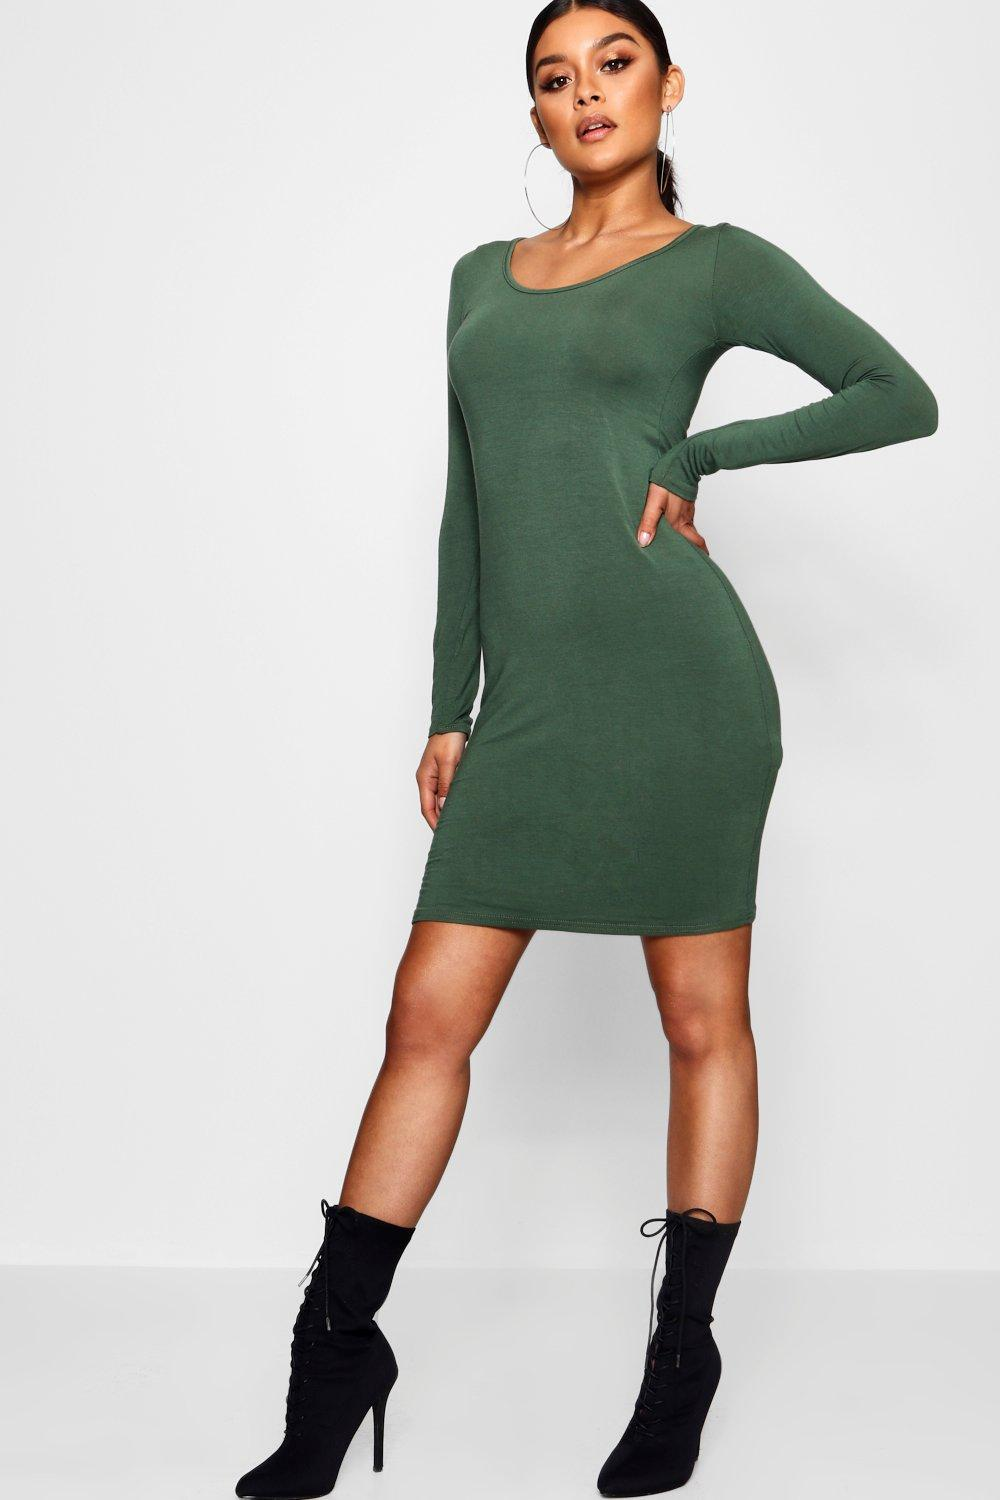 Lucie Long Sleeve Scoop Neck Bodycon Dress